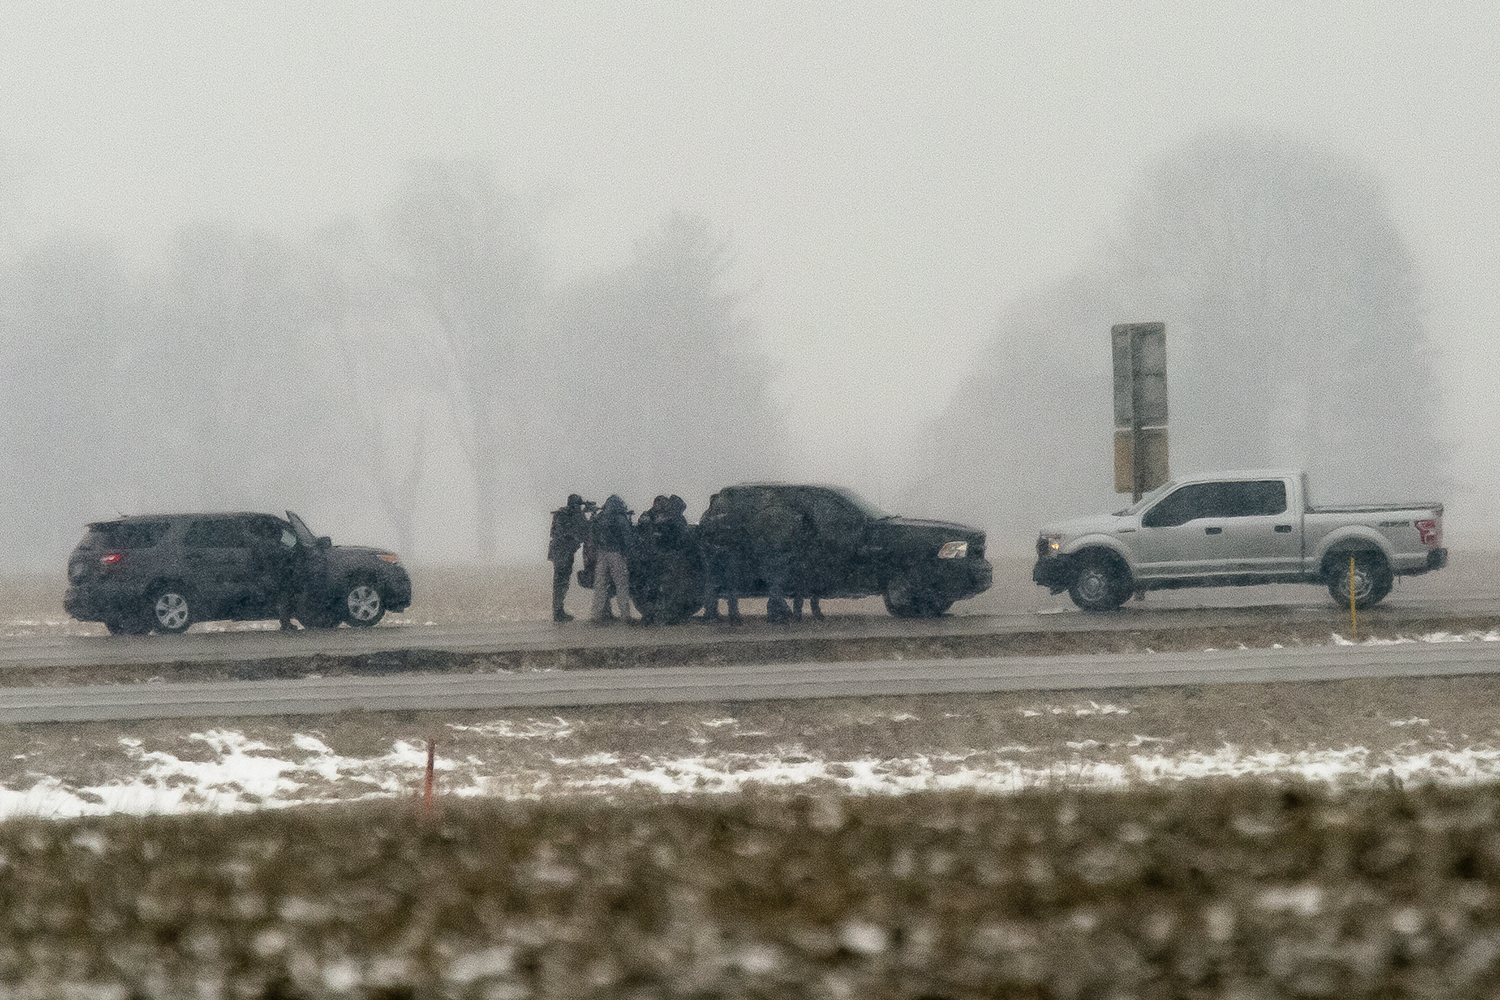 A police sharpshooter is in position where Illinois State Police and crisis negotiators are in a in a standoff with Floyd E. Brown, 39, of Springfield, on Interstate 55 near Lincoln Thursday, March 7, 2019, after Brown allegedly shot a federal agent in Rockford then fled. His car was off the southbound lanes of the interstate and Brown was in and out of the car. [Rich Saal/The State Journal-Register]